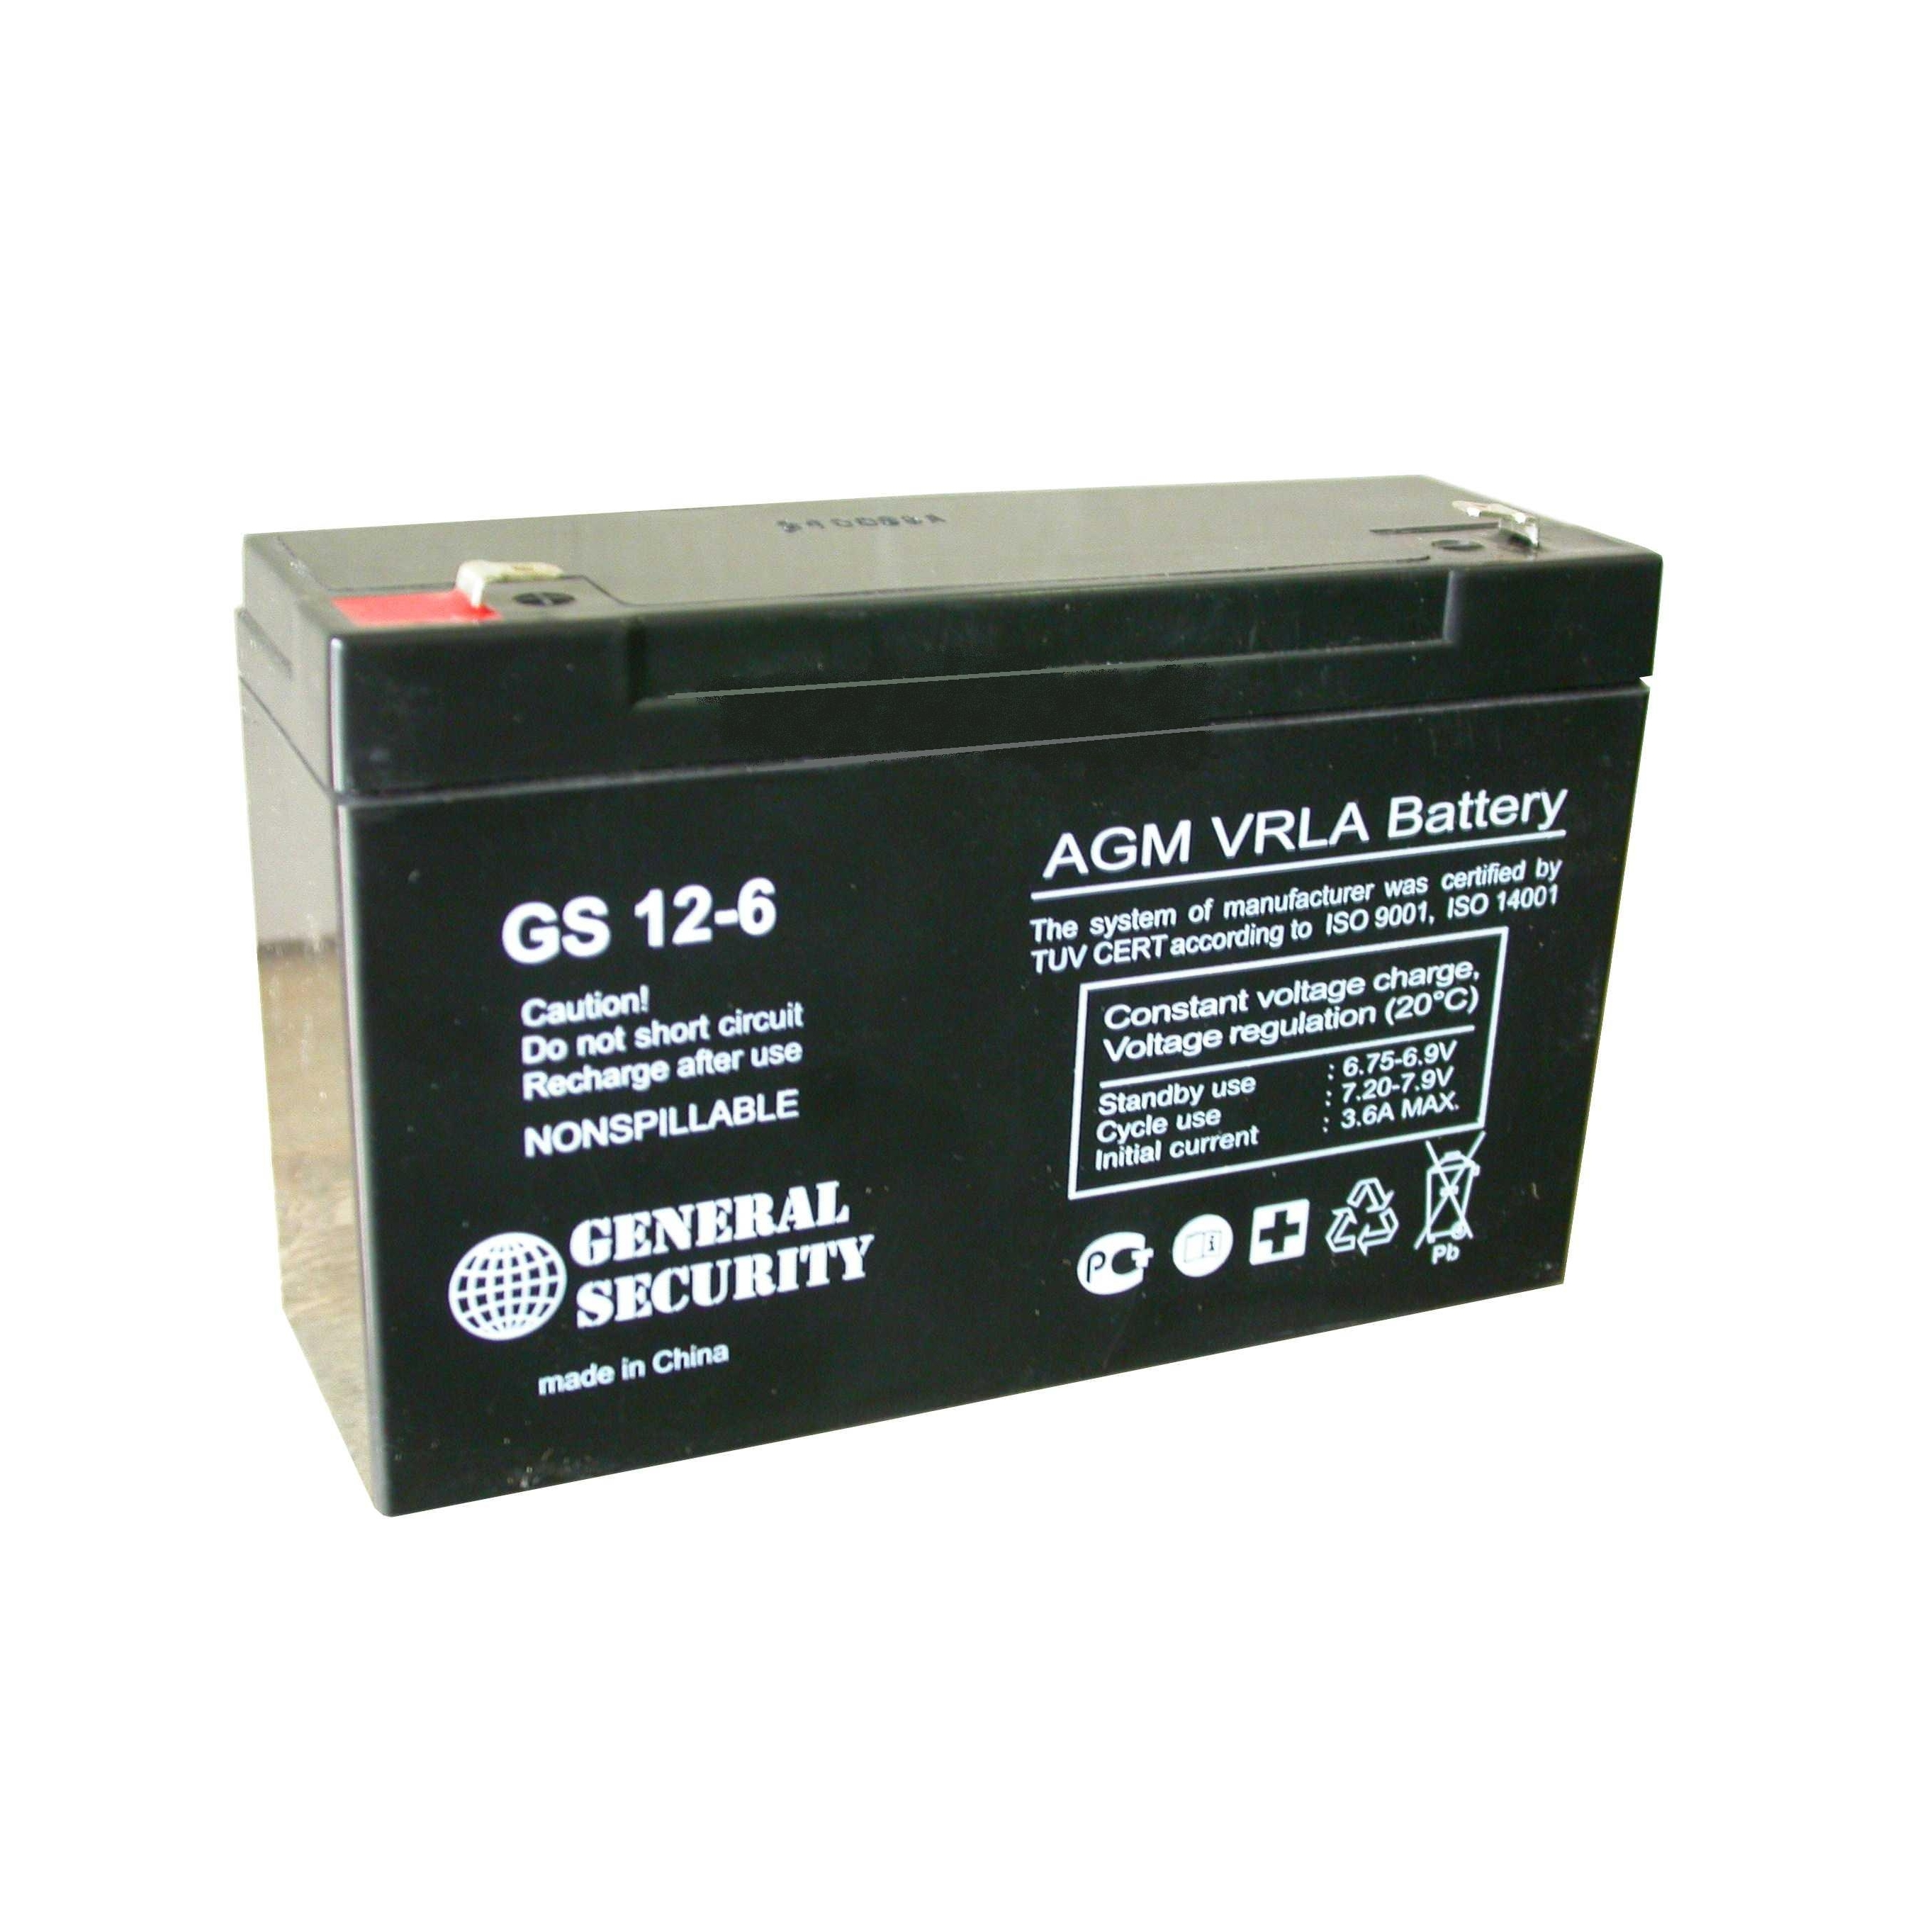 GS 12-6 - аккумулятор General Security 12ah 6V